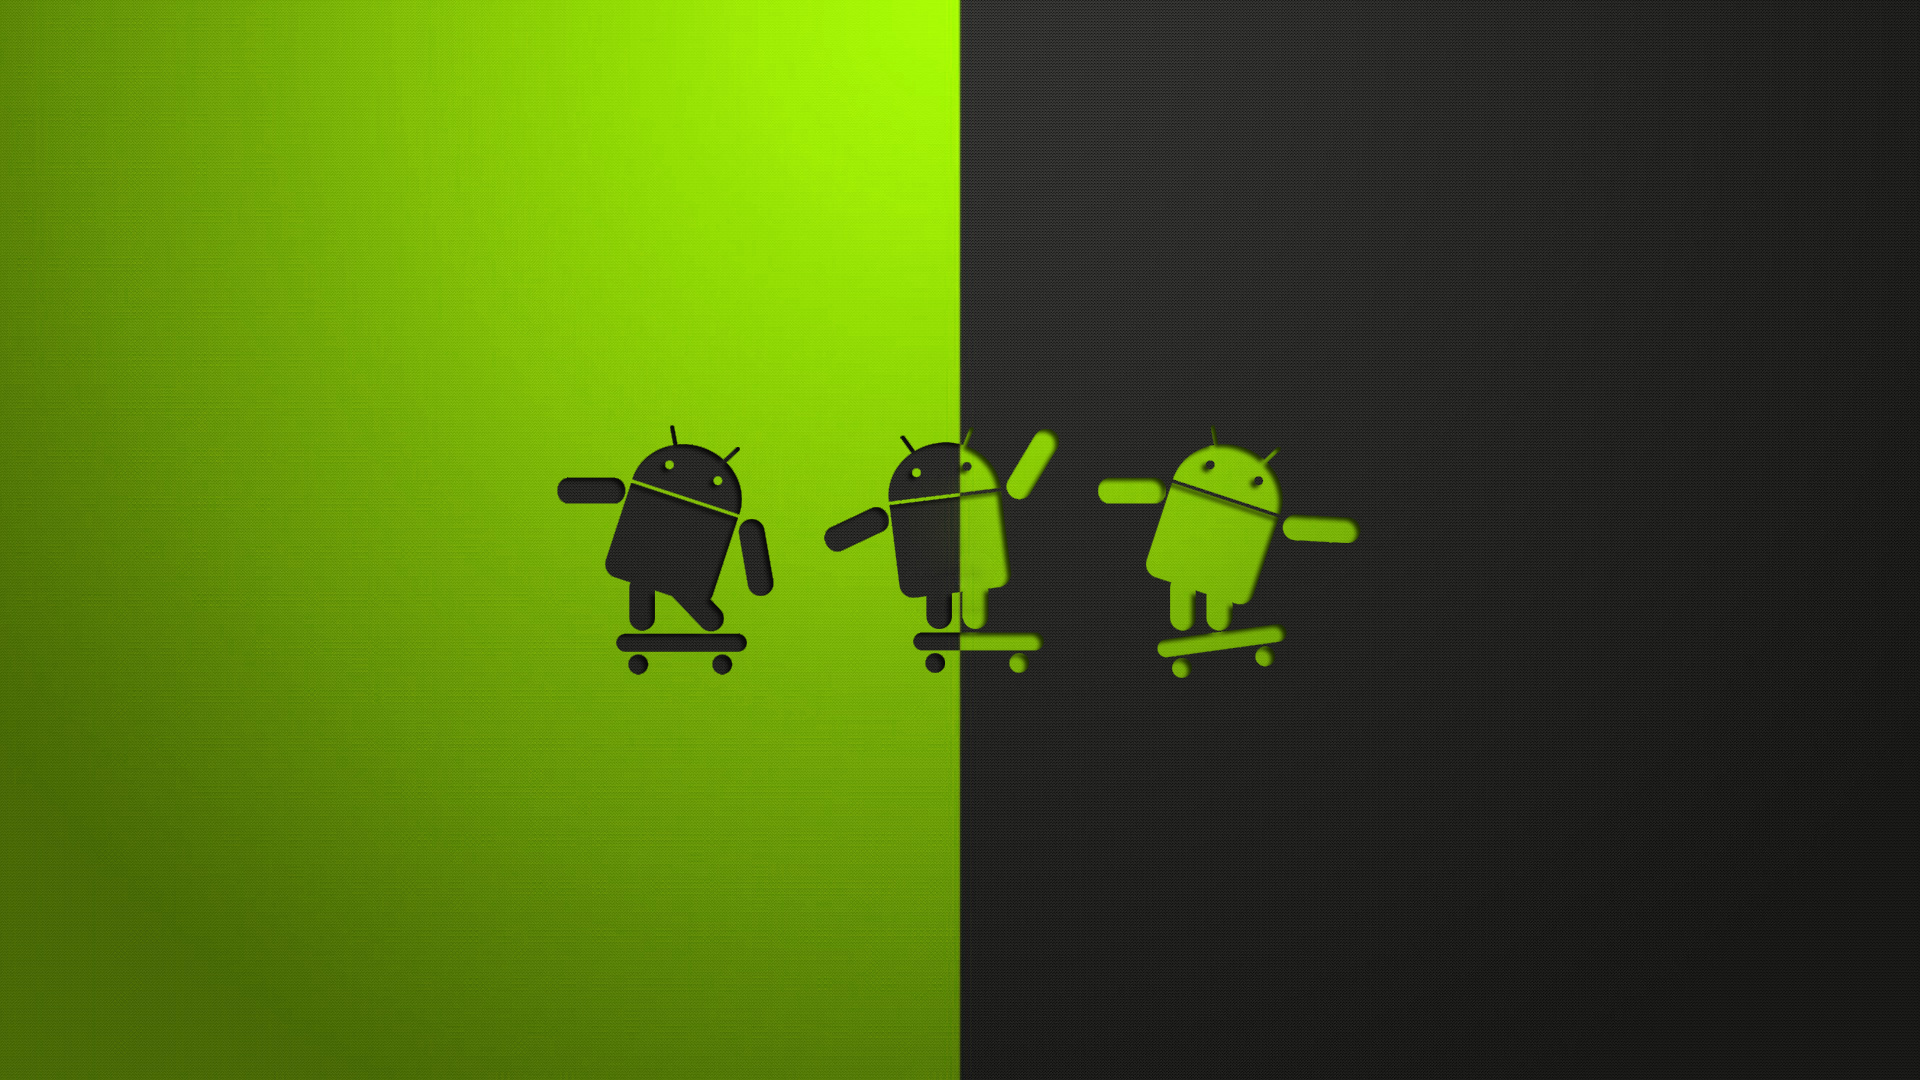 Android-Green-Black-Wallpaper-Image[1]